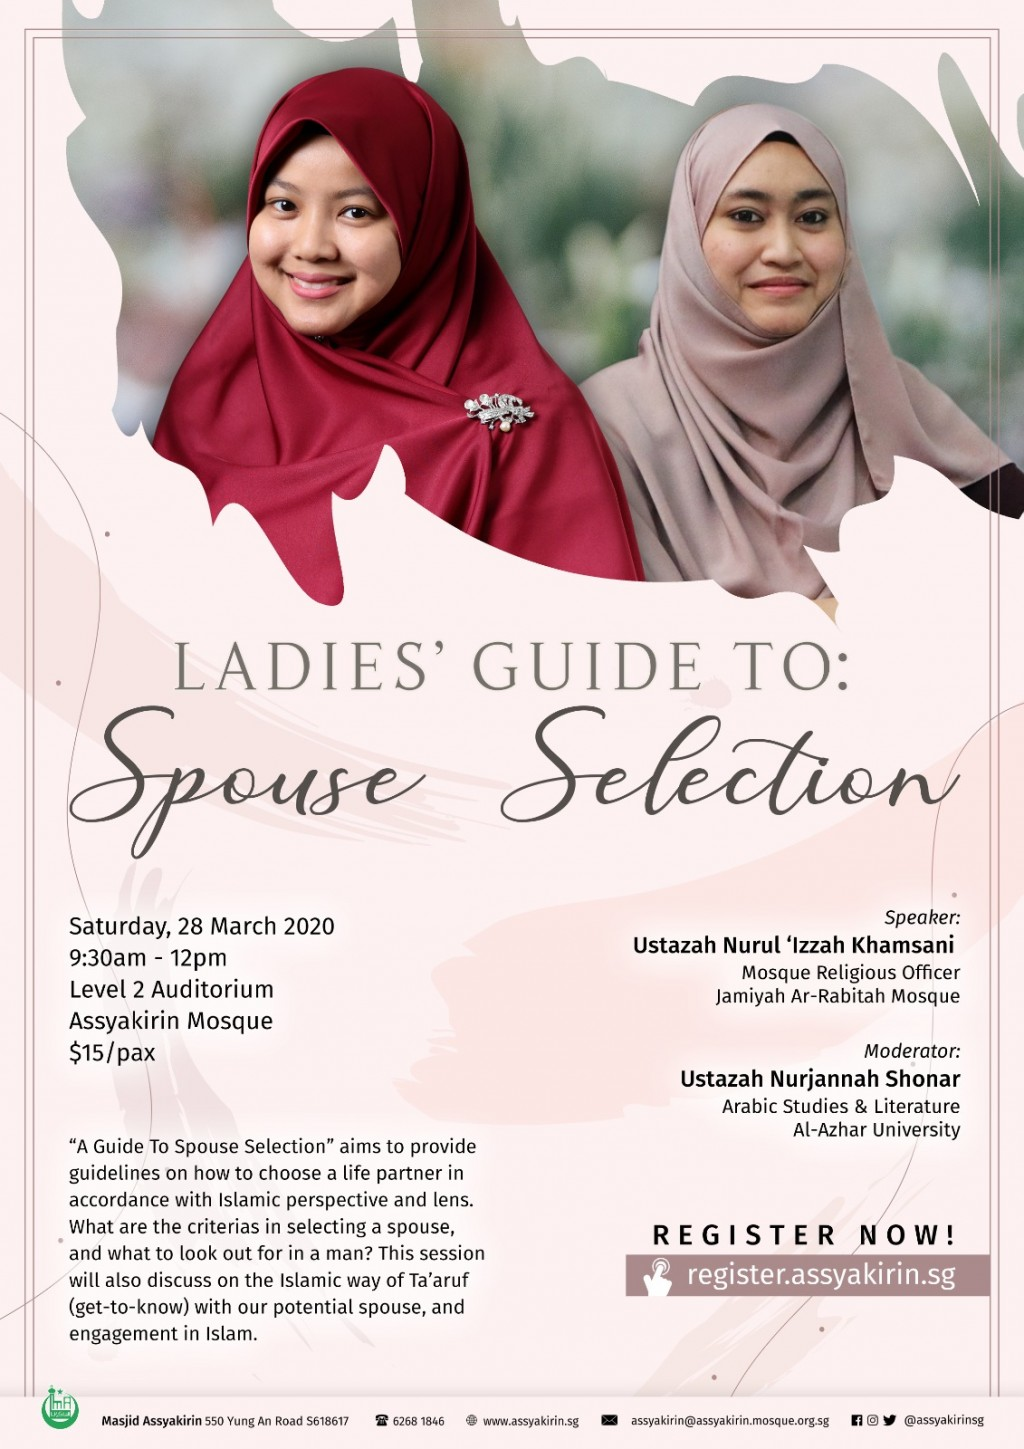 Ladies' Guide To: Spouse Selection